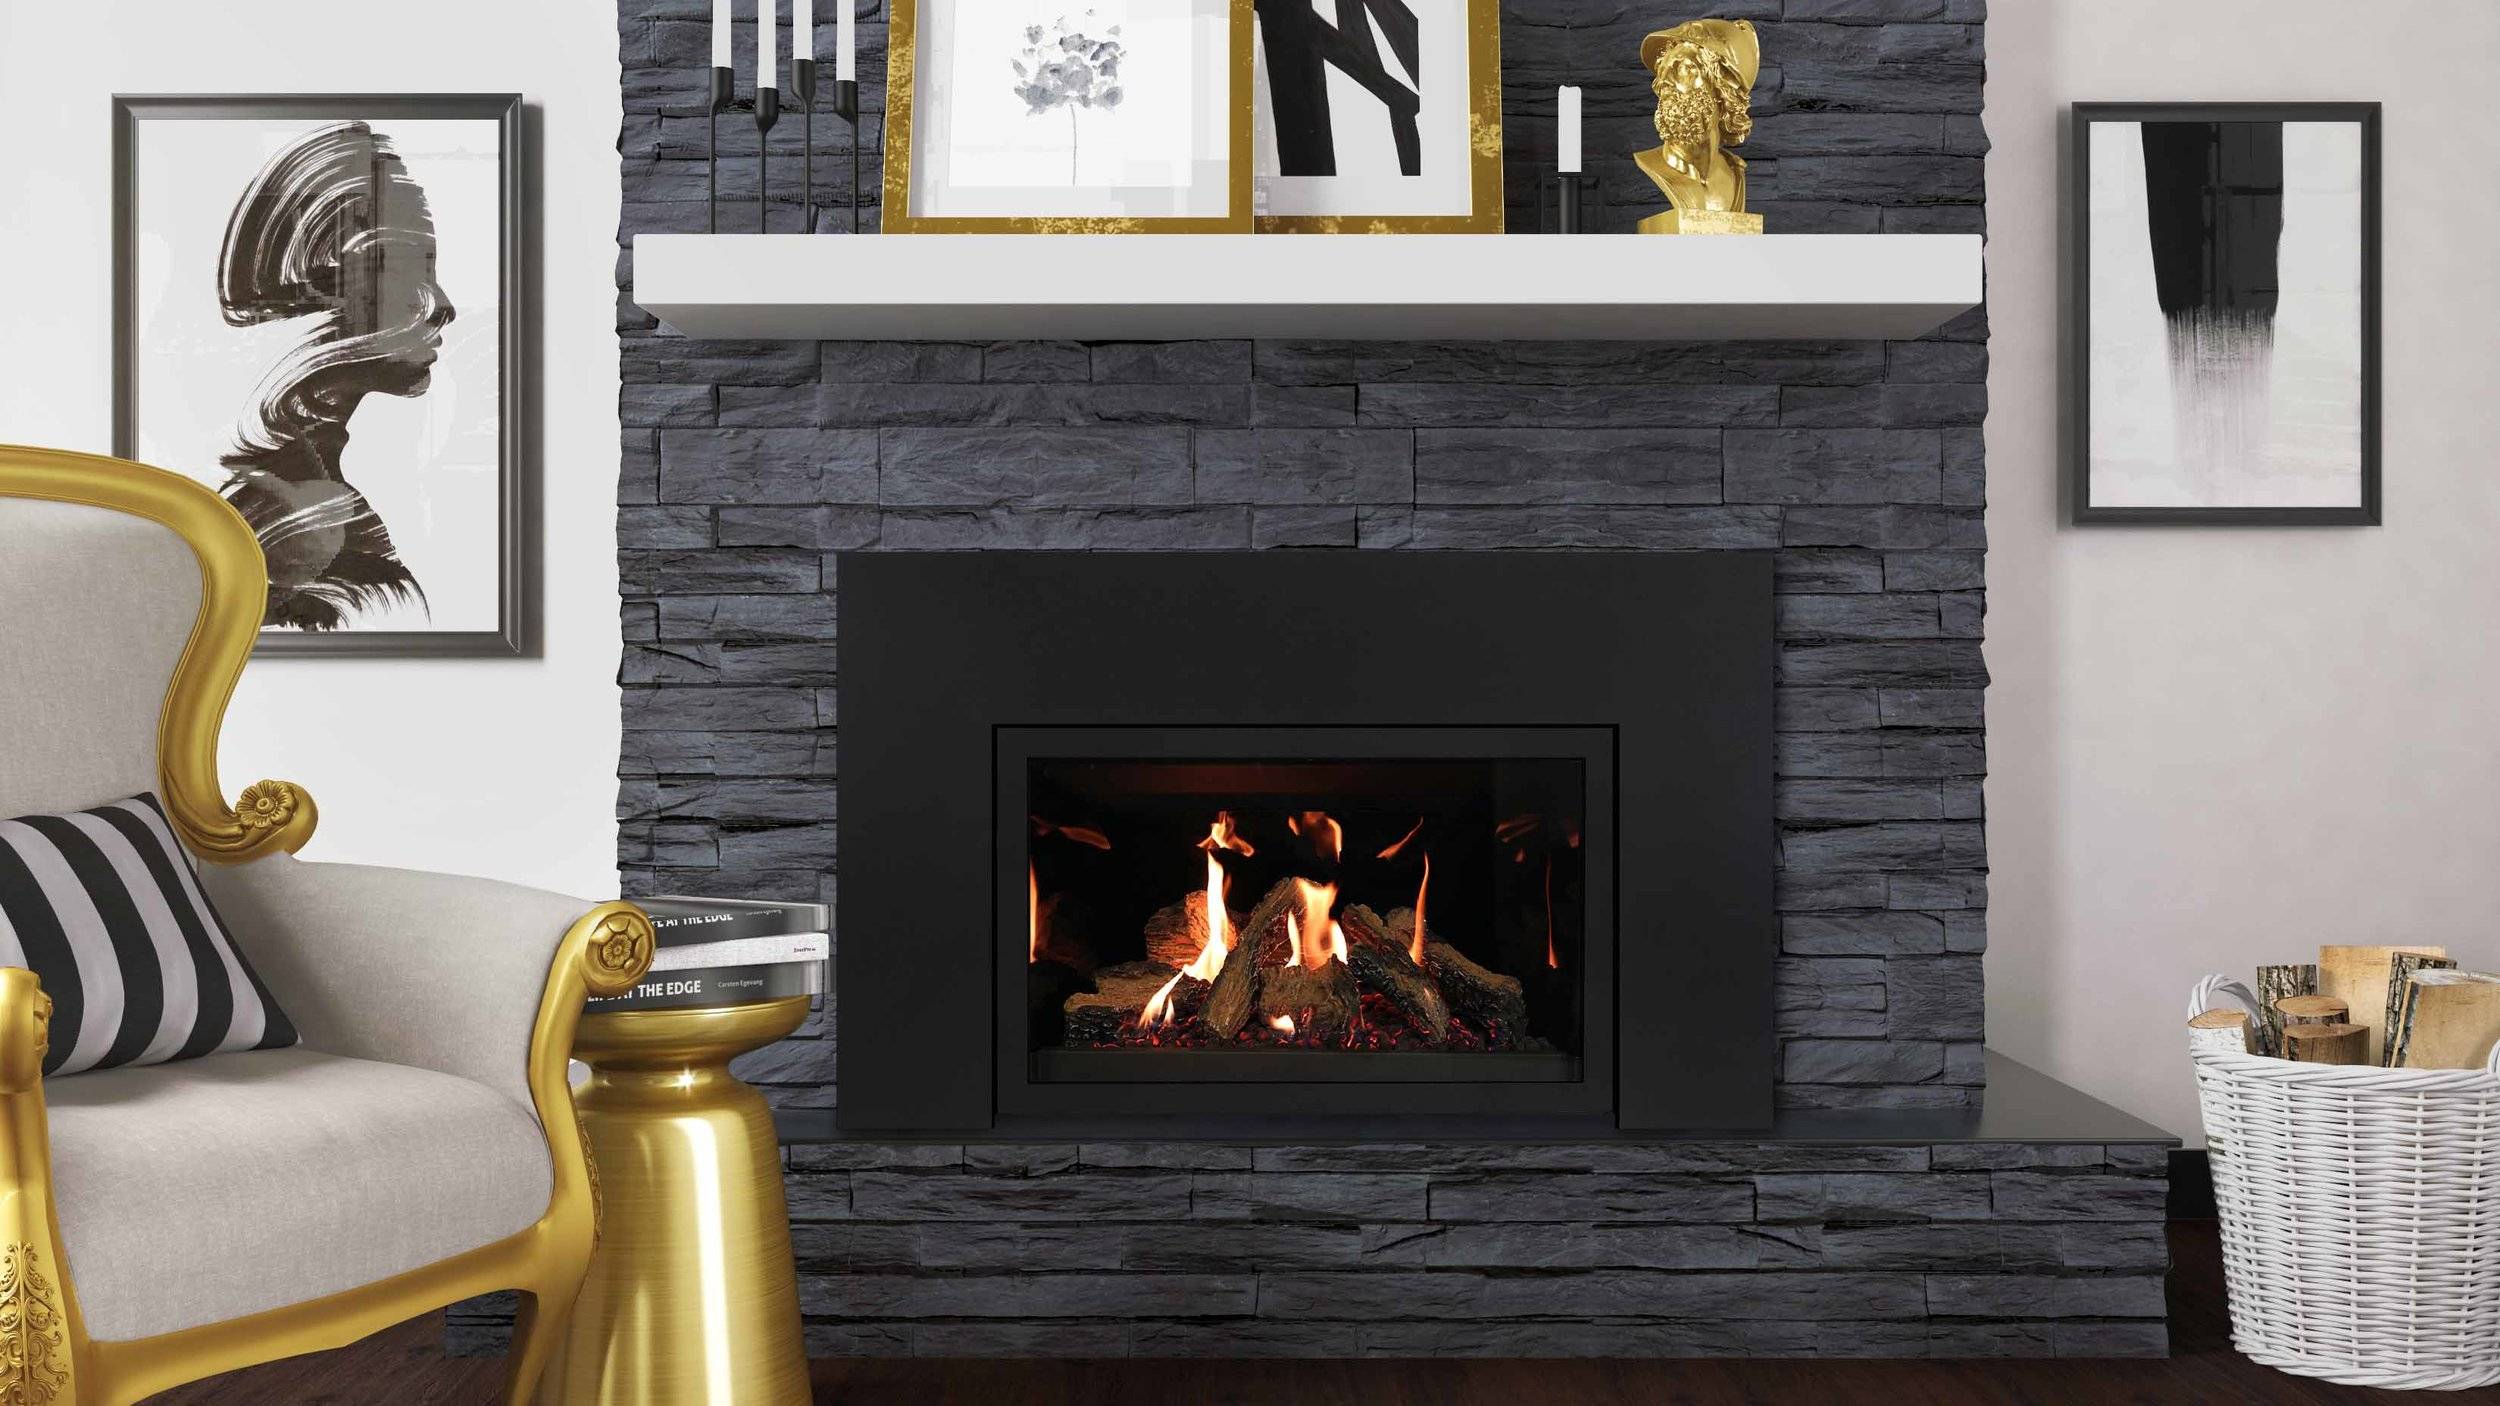 KC Gas Fireplace Service - We have provided professional services for over 5 years to the greater Kansas City area. Our team has over 60 years of experience and knowledge about gas fireplaces. We sell, install, and repair a variety of gas fireplaces. We pride our company on being professional, educated, and reliable when it comes to adding value to your home.We are genuinely appreciative of all of our customers & do our best for each of you! We offer military, senior, group discount rates.